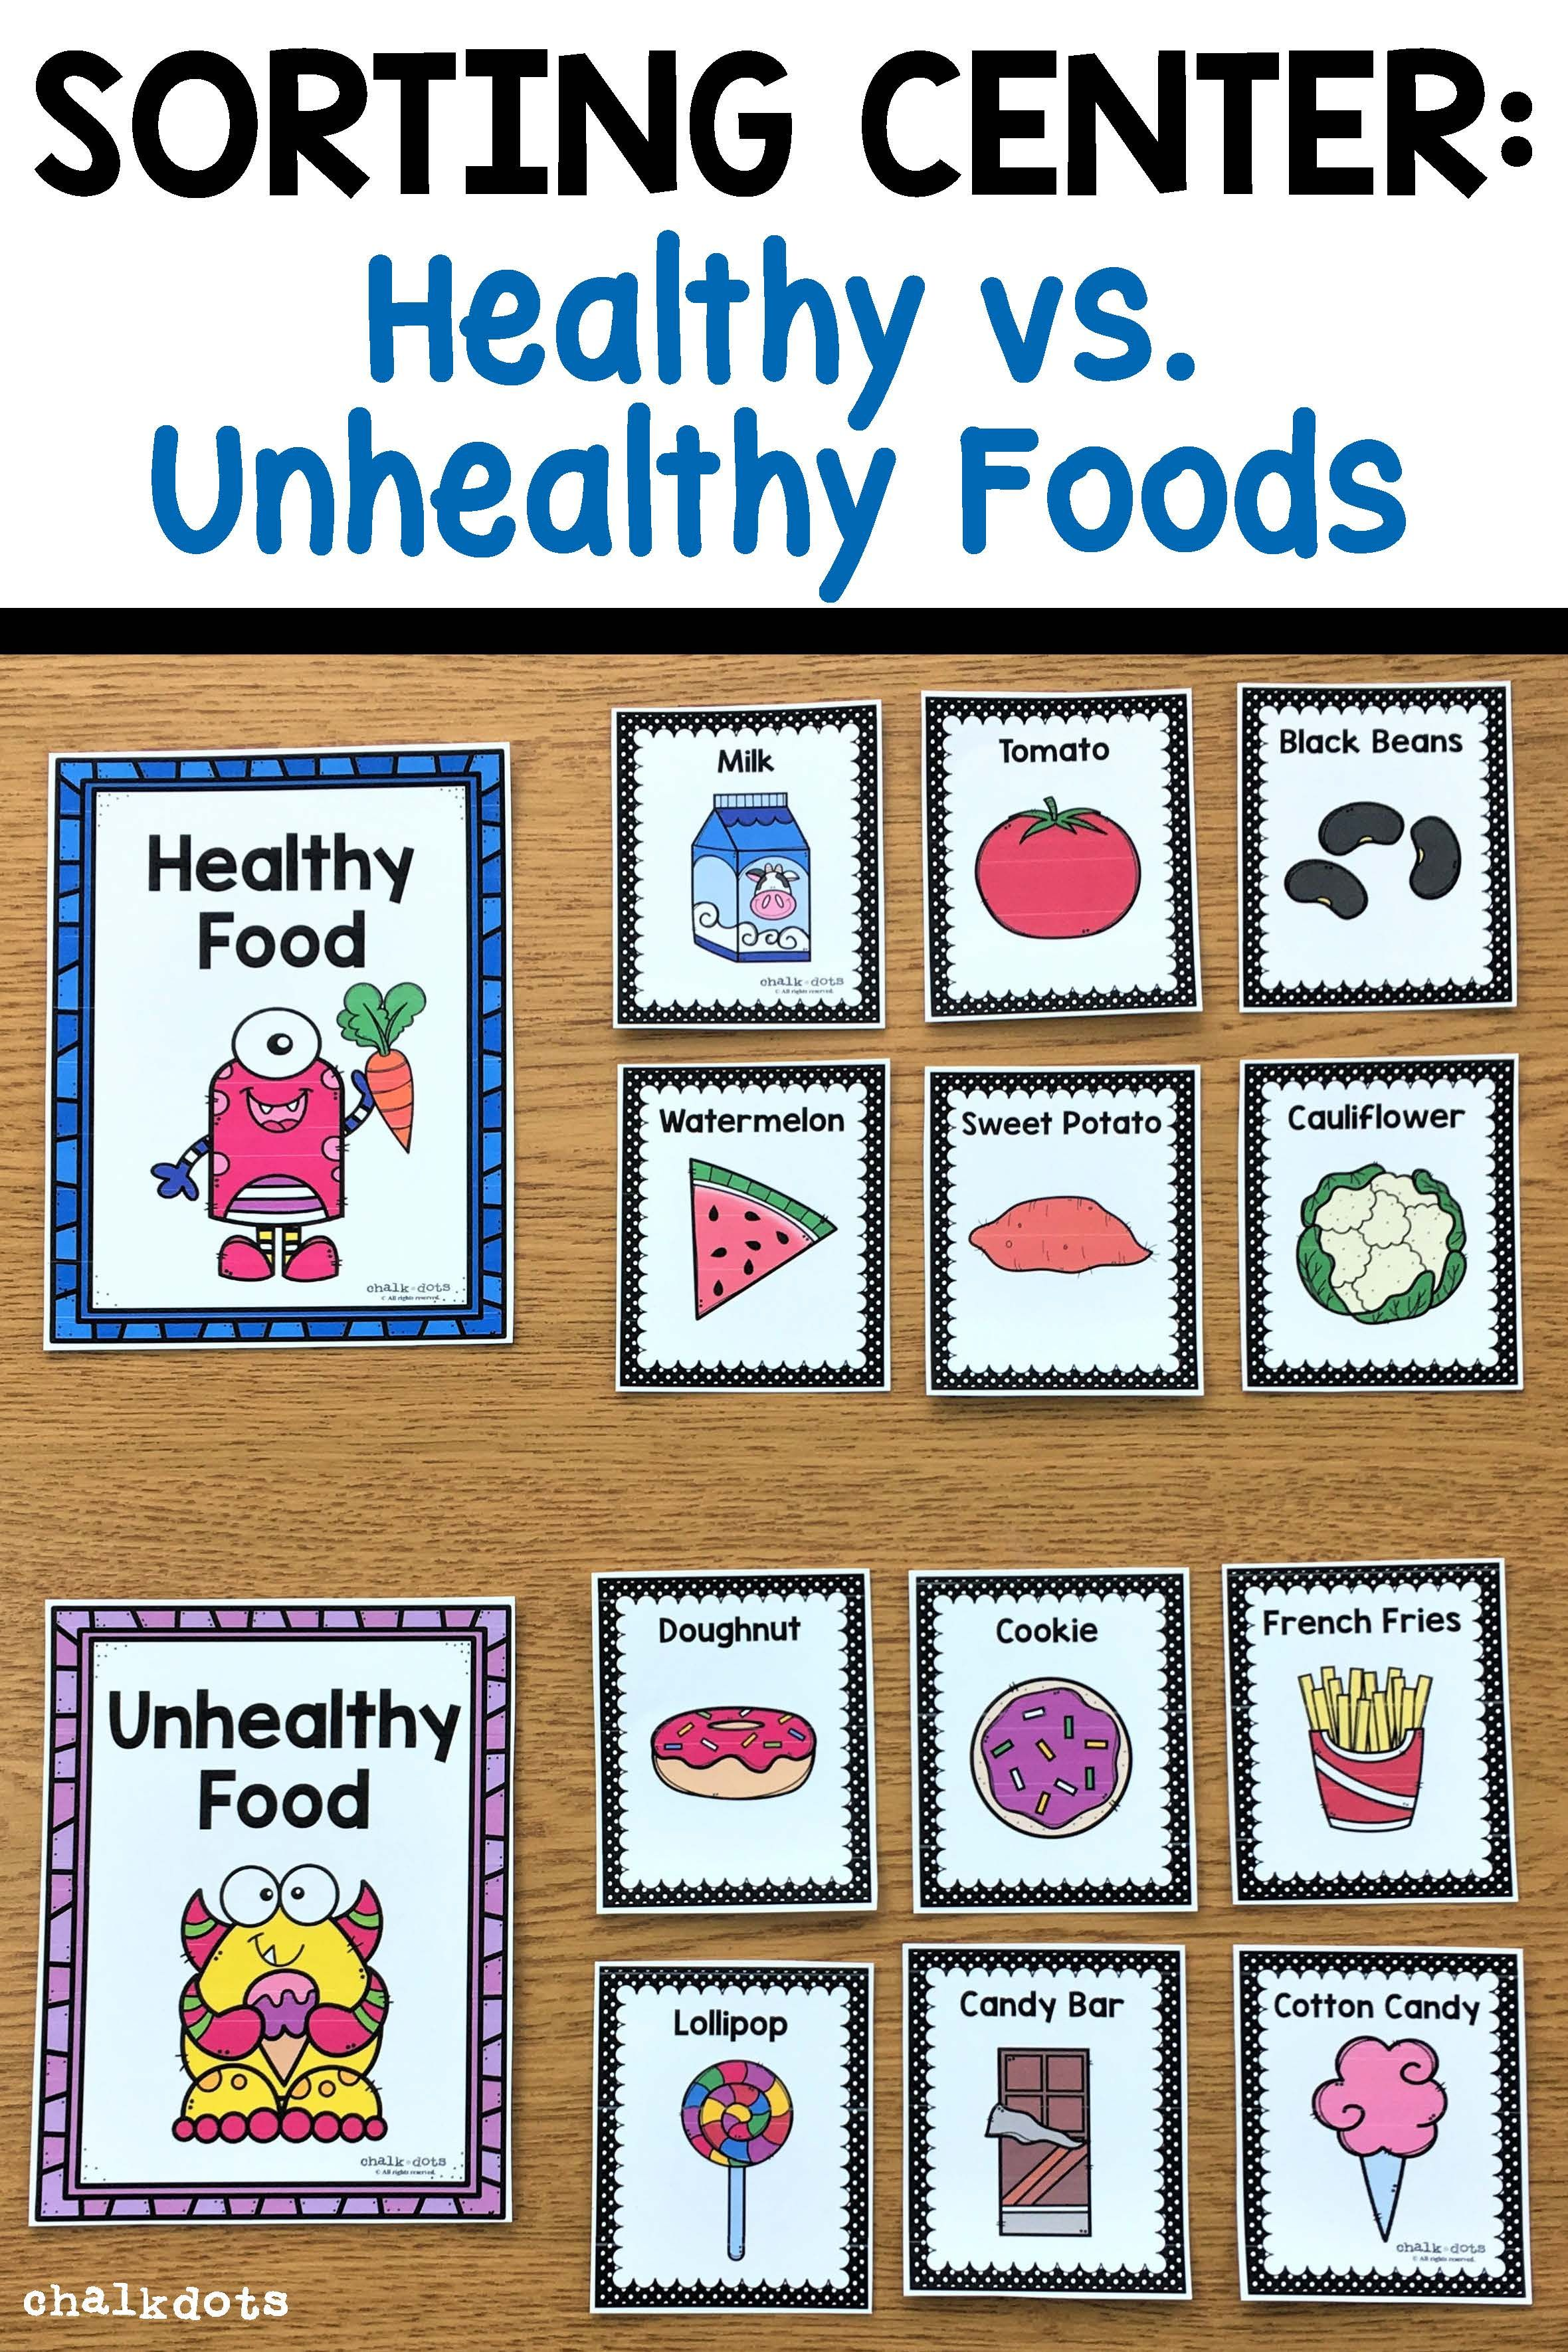 Food Group Sorting And Healthy Vs Unhealthy Food Sorting Healthy Food Activities For Preschool Group Meals Healthy And Unhealthy Food [ 3540 x 2360 Pixel ]